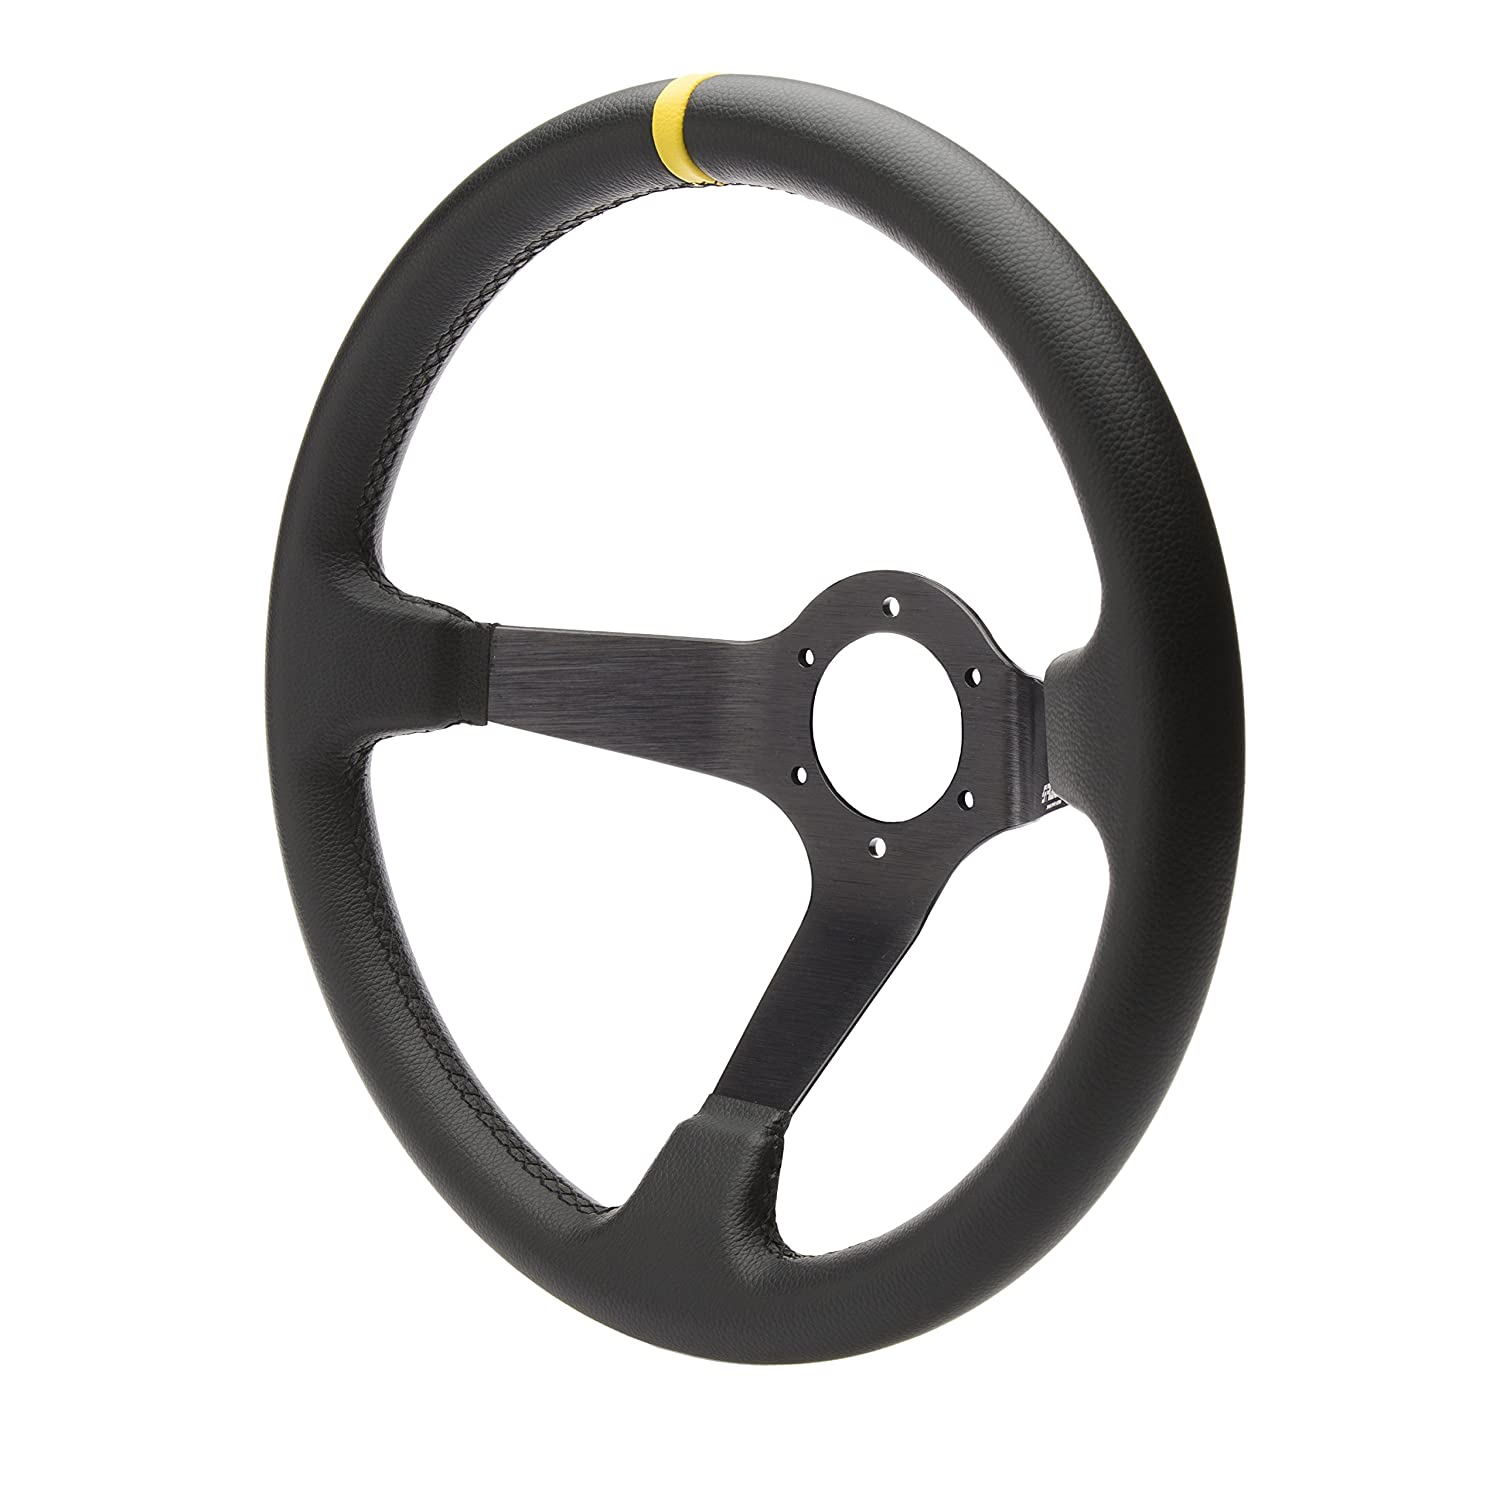 Simoni Racing CAR/350P Volante Sportivo a Calice, Nero/Giallo